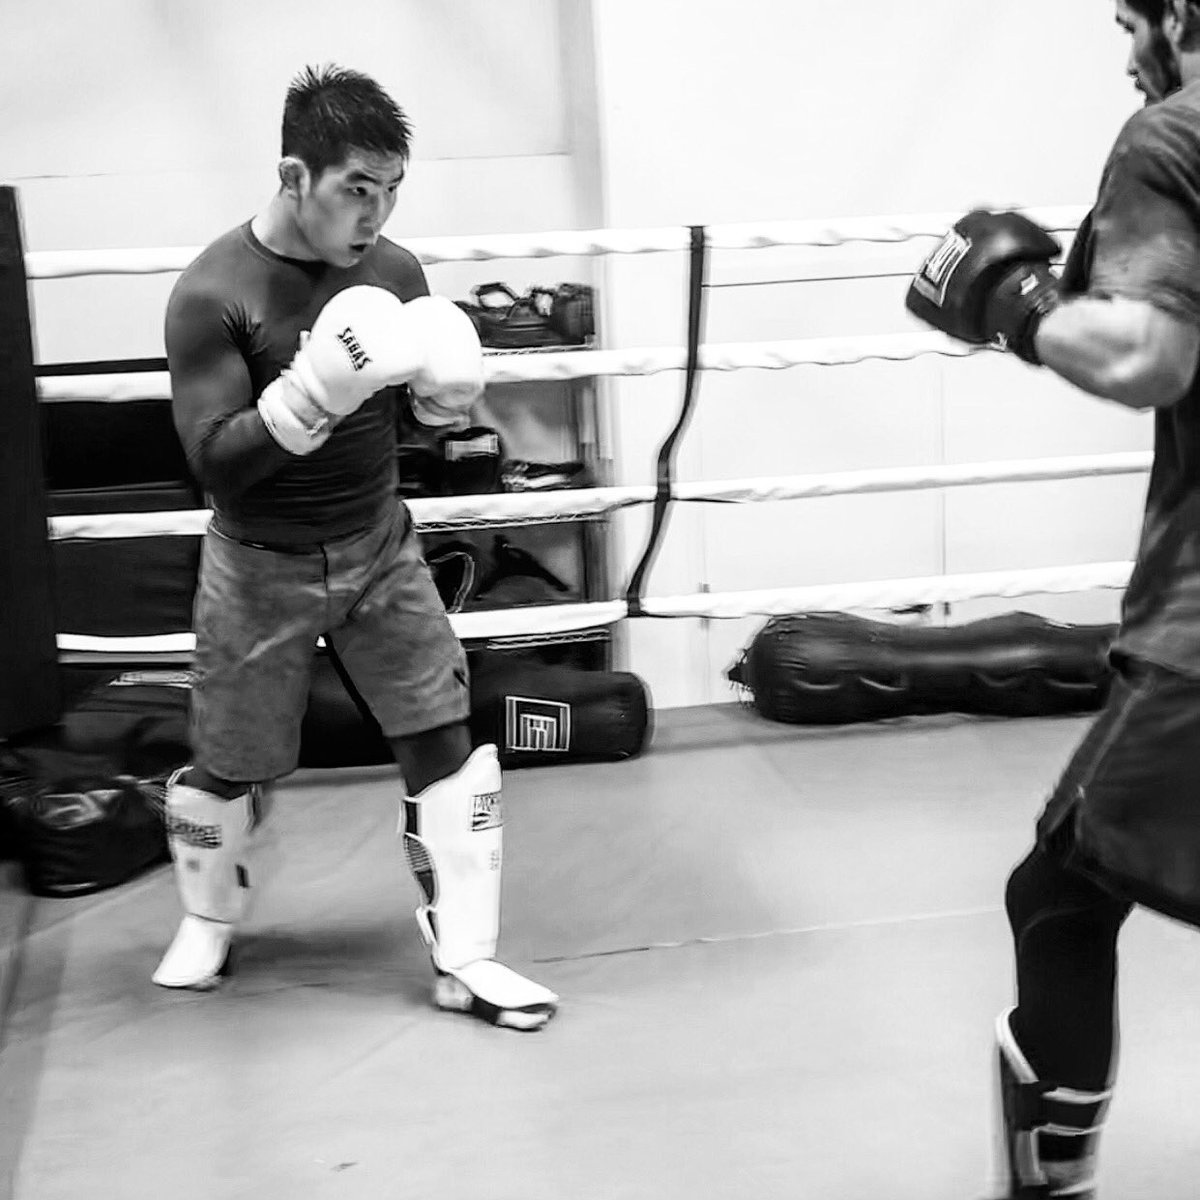 """""""The Most Dangerous Person is the one who listens, thinks, and observes."""" -Bruce Lee  👊😈💯  #sparring #fightteam #boxing #muaythai #bjj #kickboxing #mixedmartialarts #mma #mmafighter #fitness #motivation #lifestyle #fight #fighting #한국 #격투기 #파이팅 https://t.co/BYbjTi8969"""